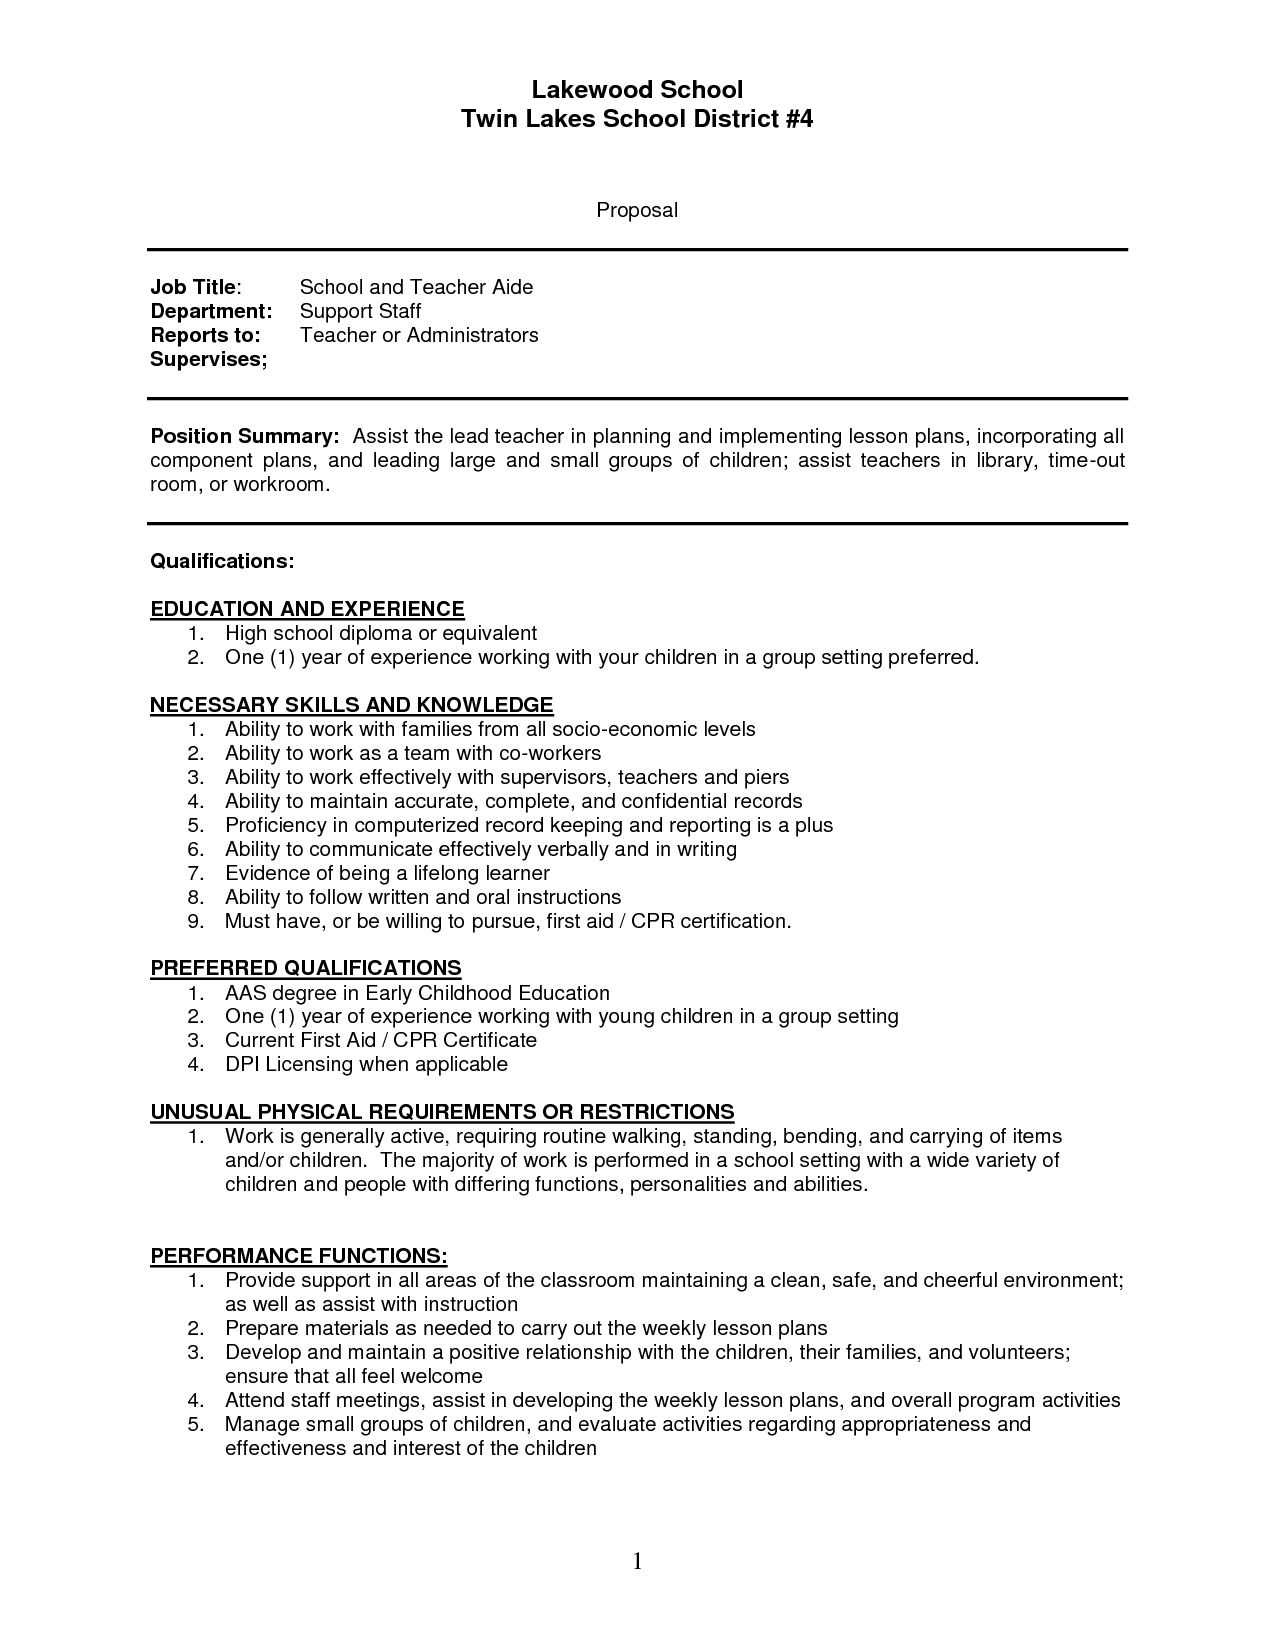 Teacher assistant Job Description for Resume - Sample Resume Teachers Aide assistant Cover Letter Teacher Sap